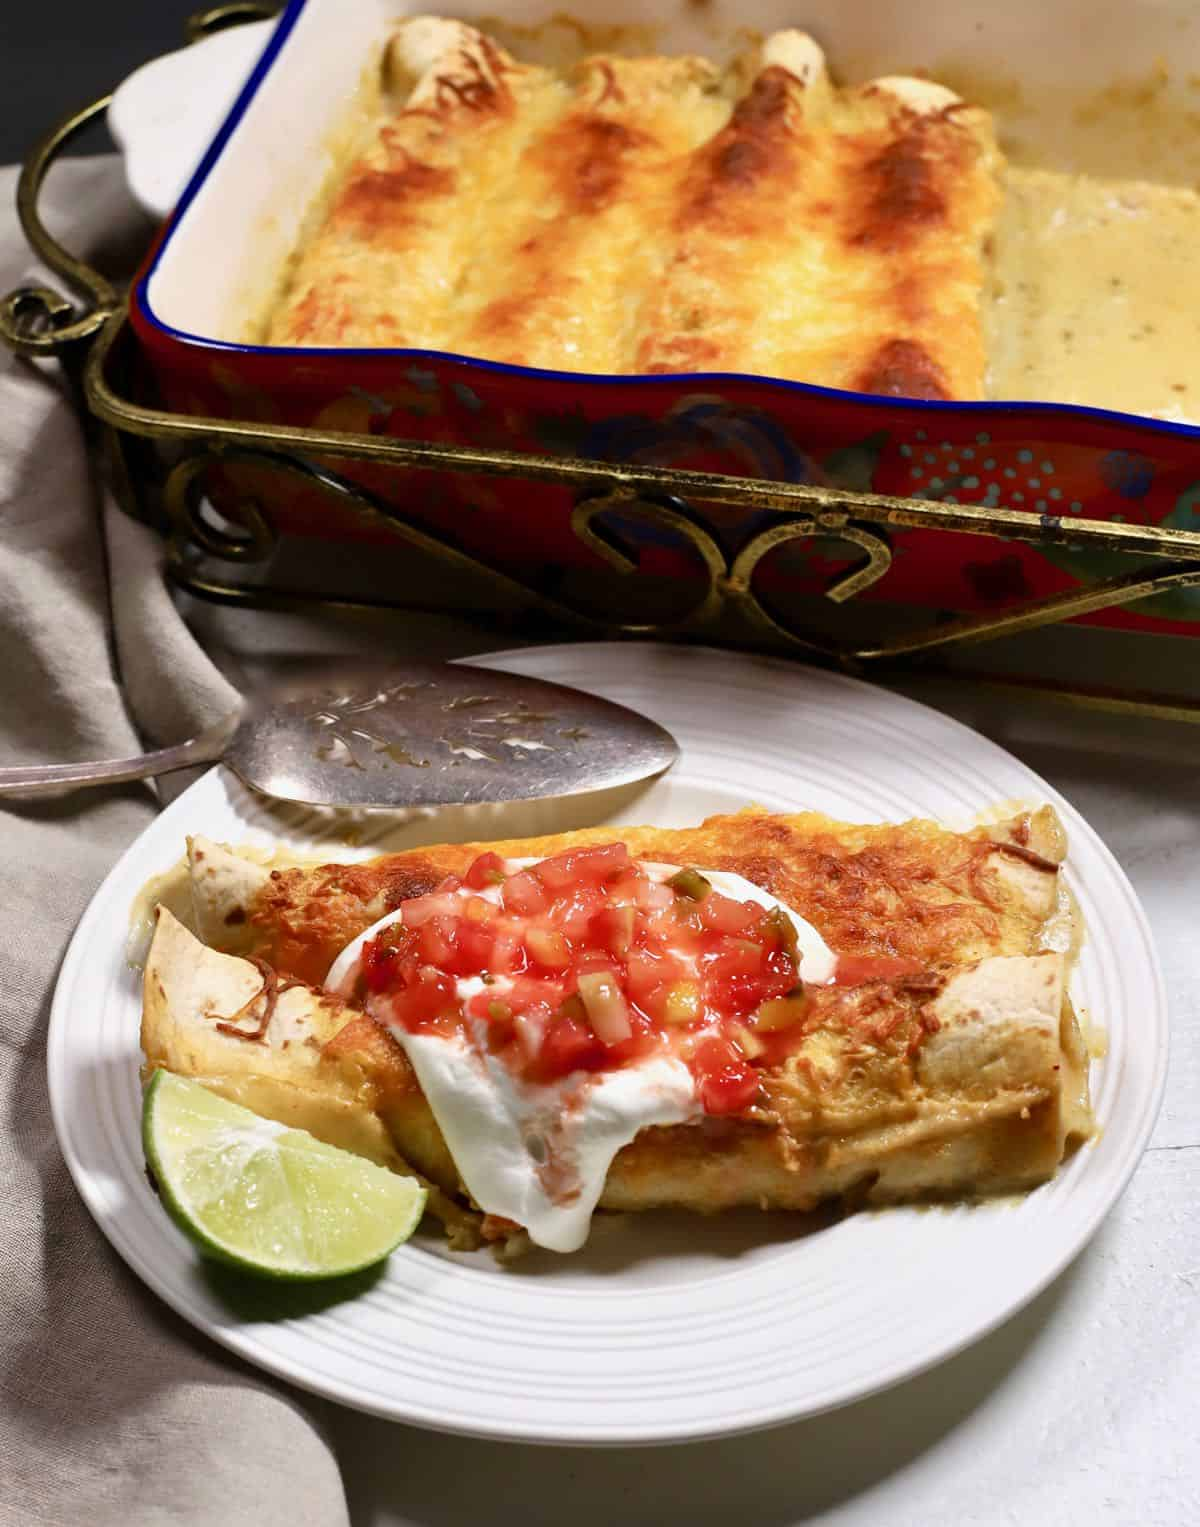 Enchiladas on a plate next to a baking dish full of them.